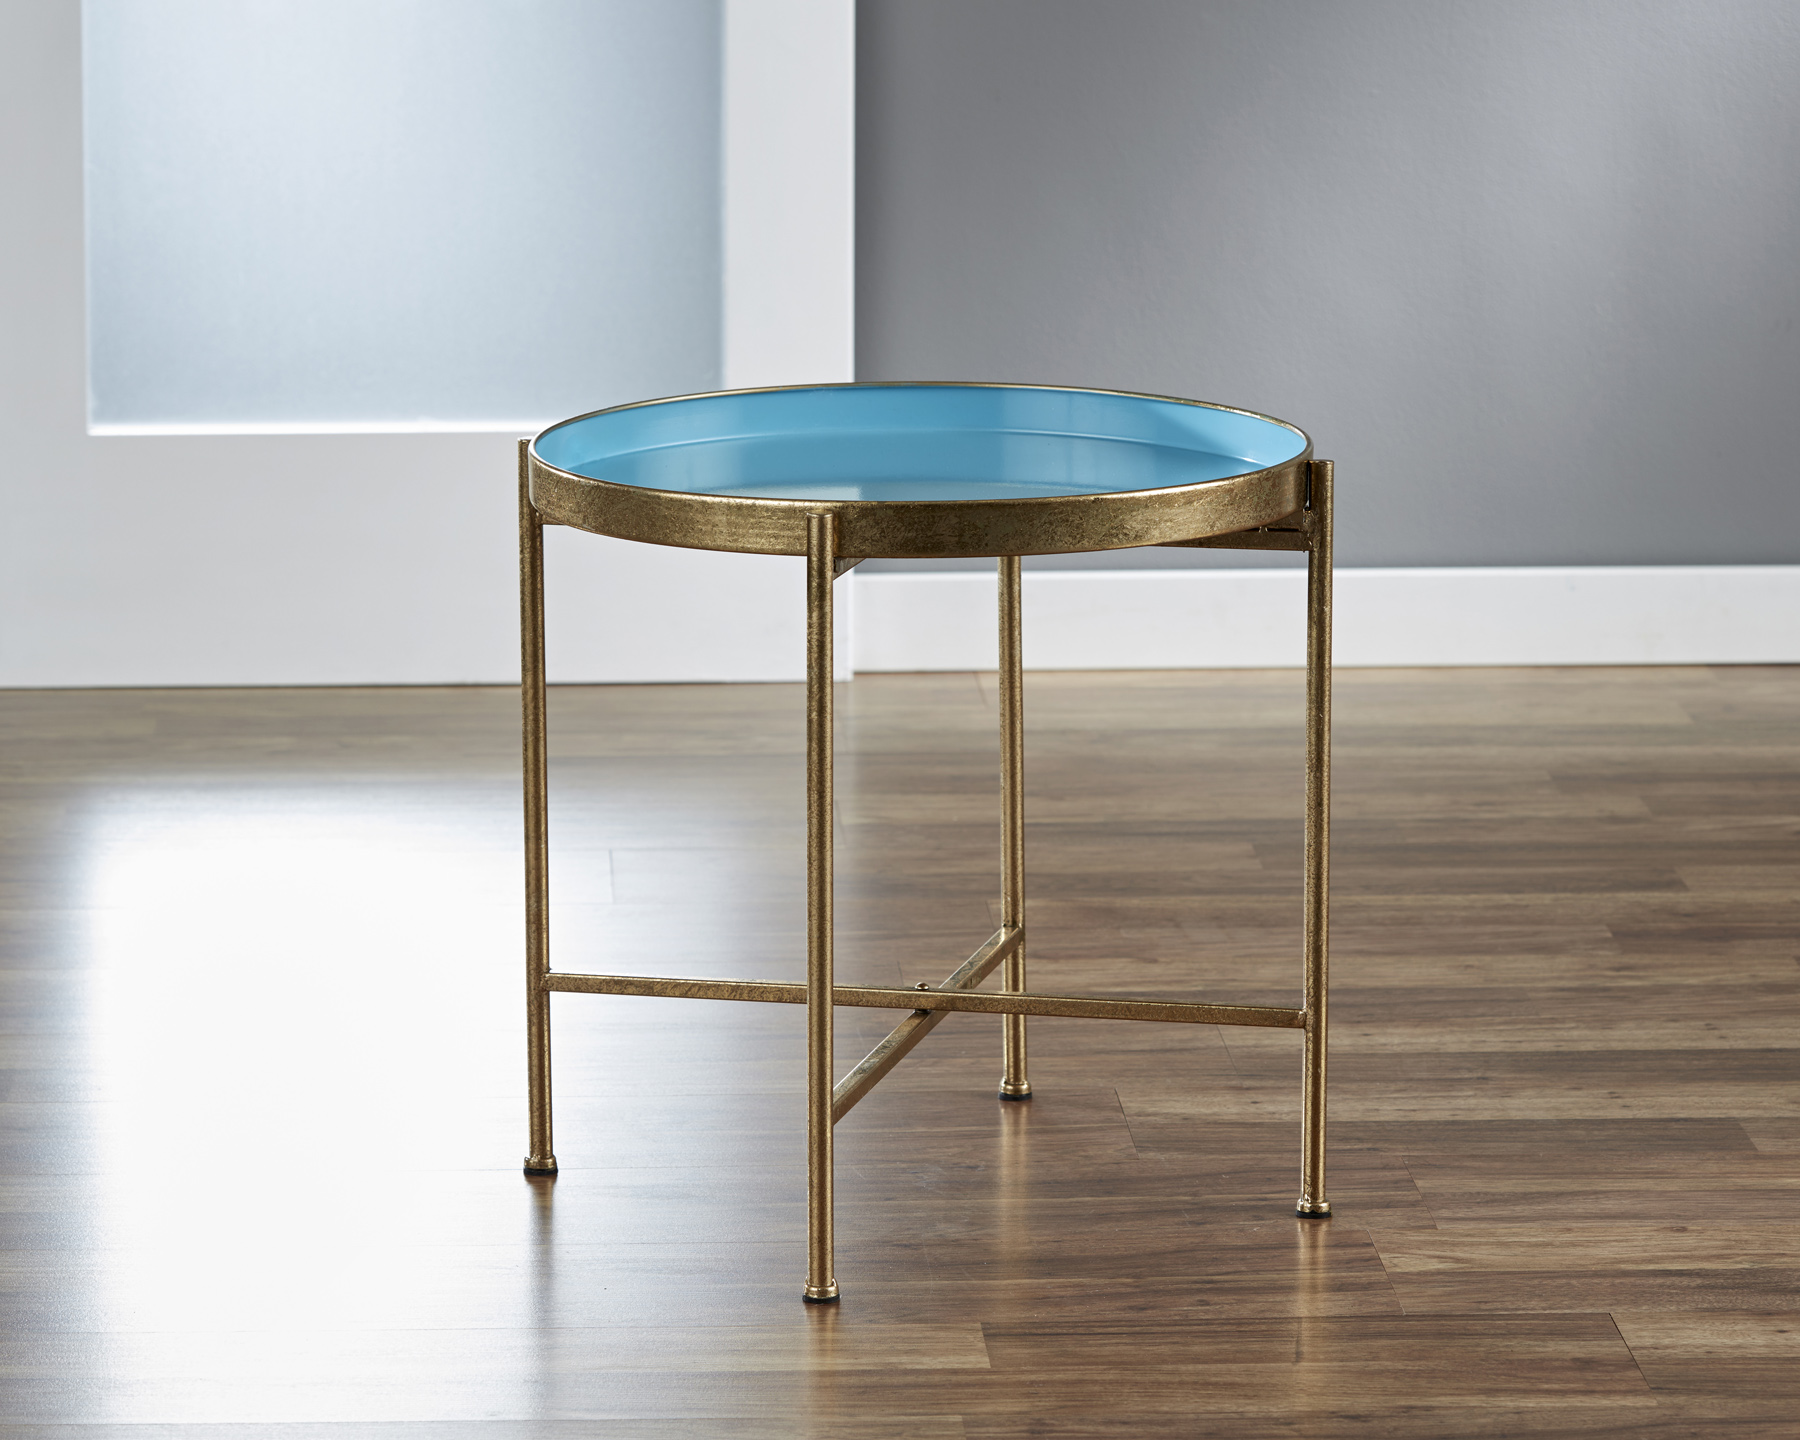 Large Gild Pop Up Tray Table in Blue